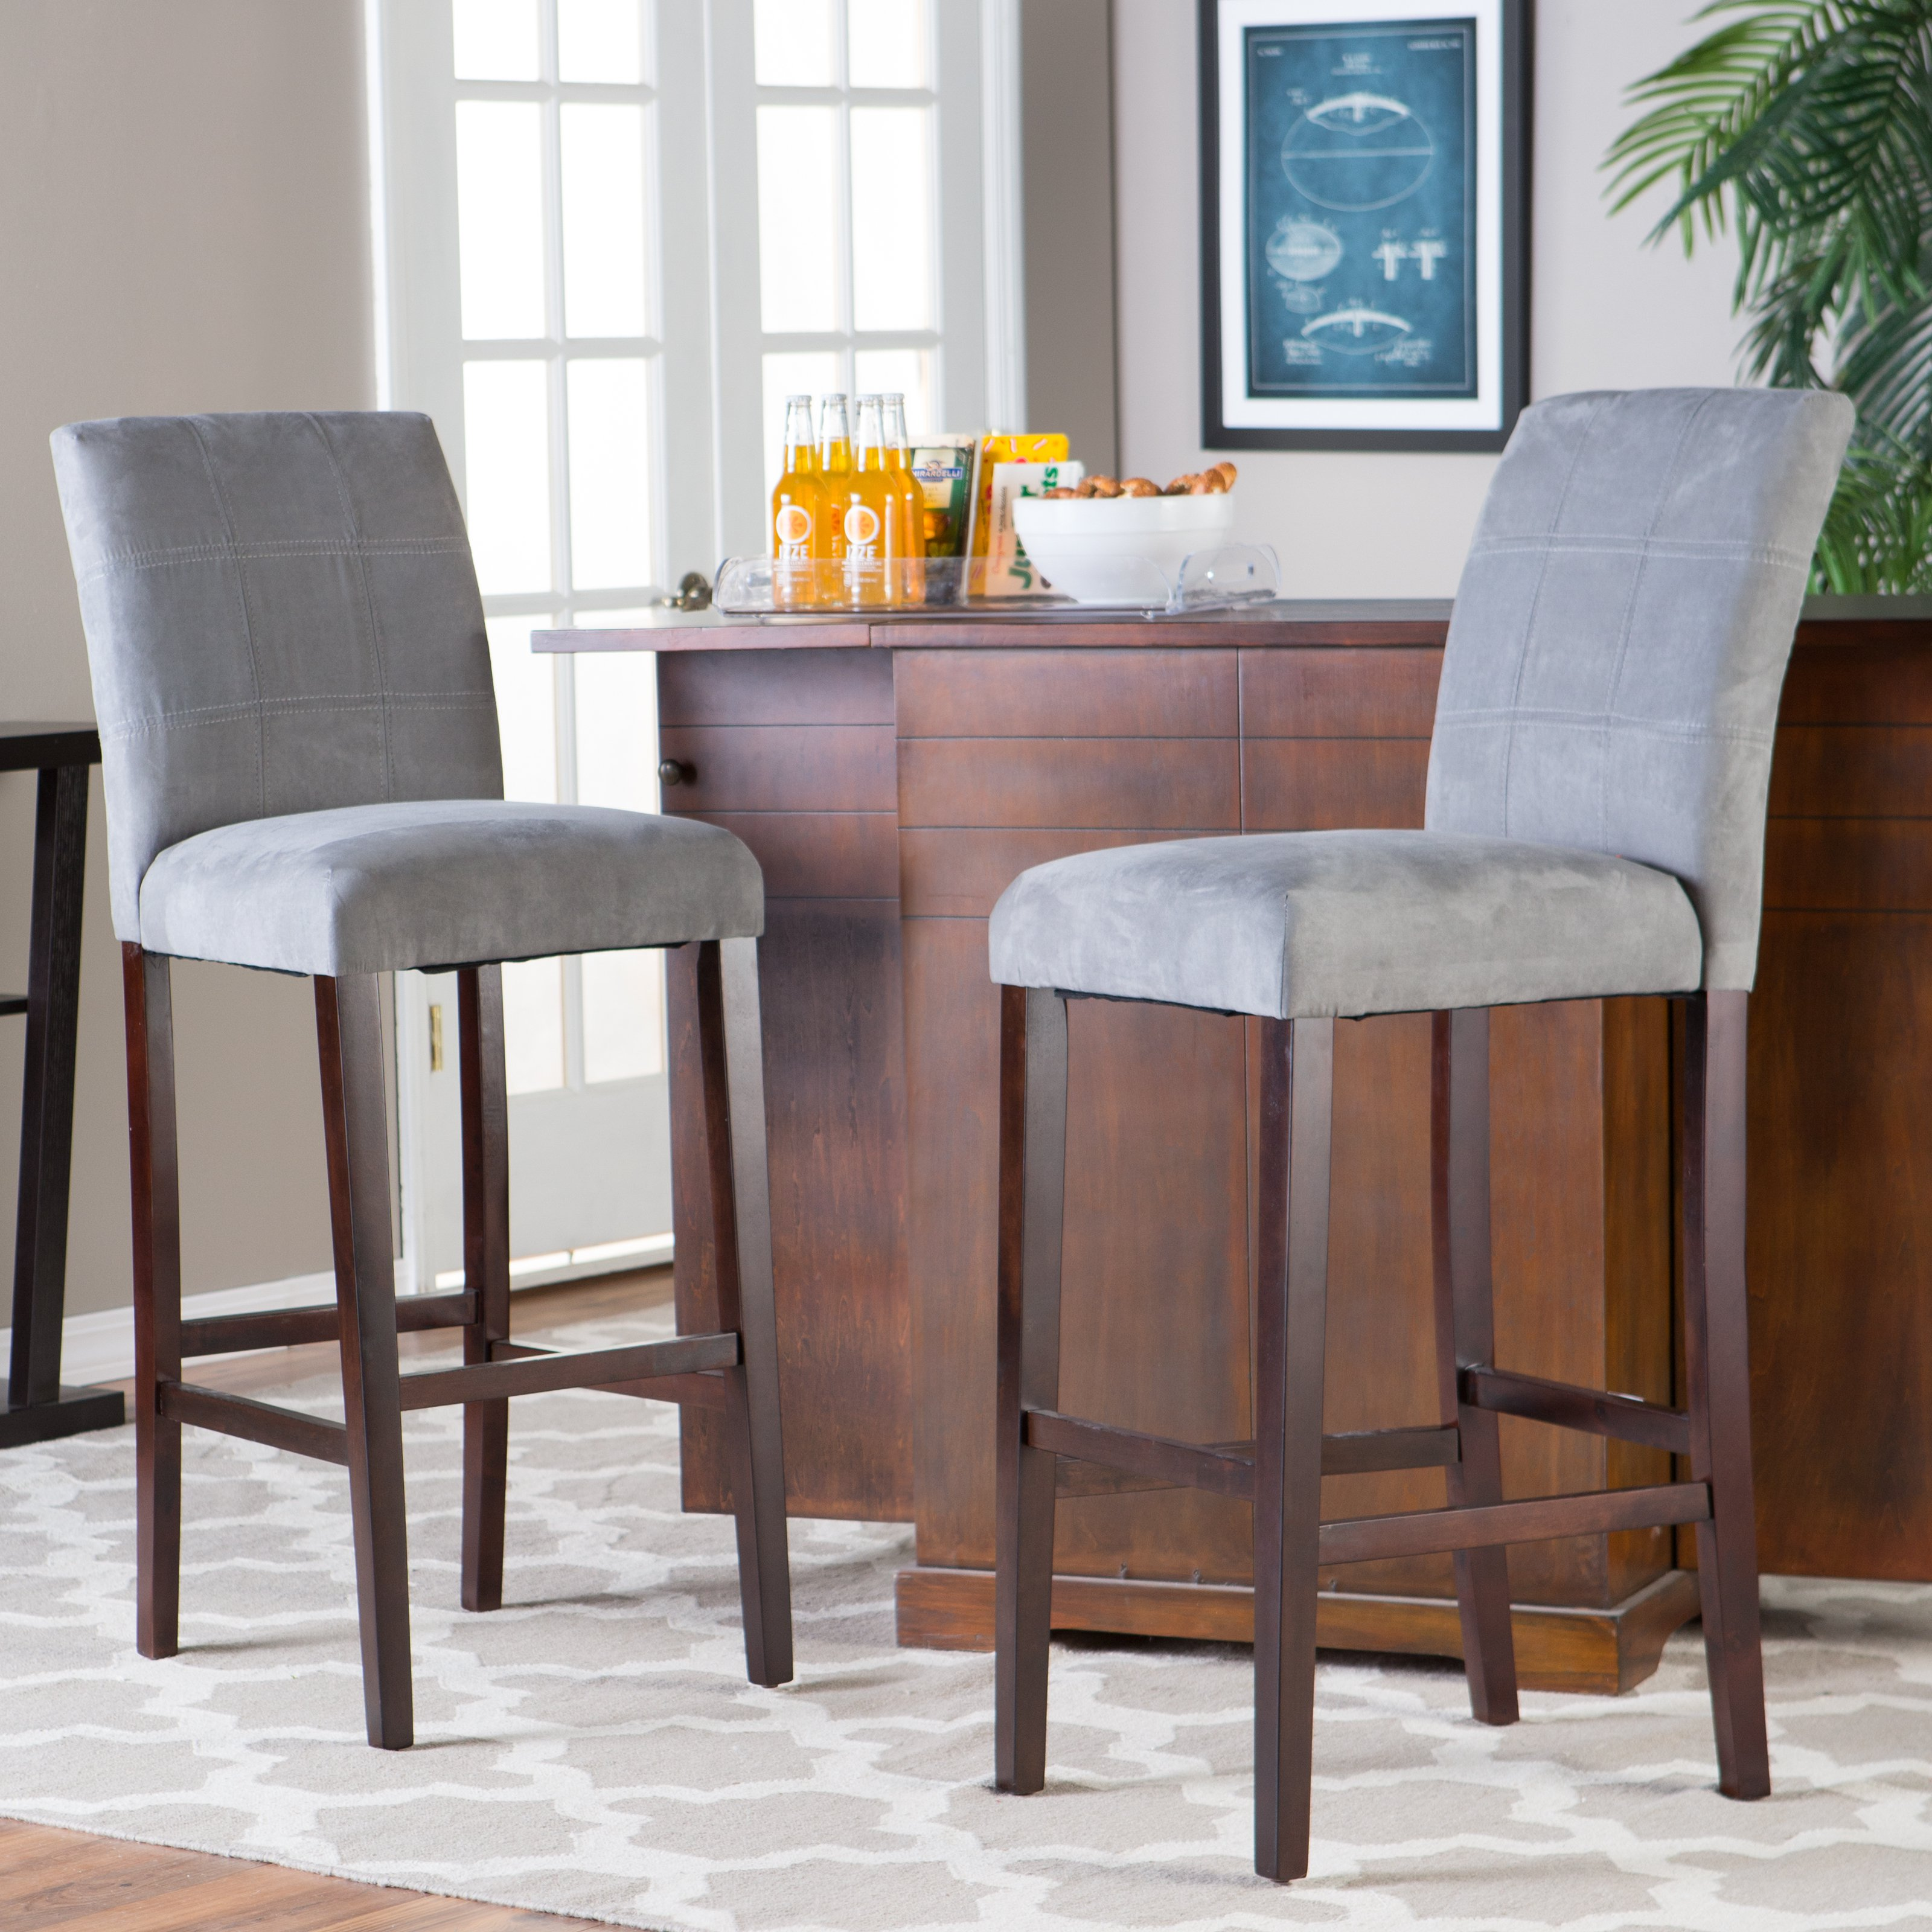 Bar stool chairs with backs - Bar Stools Backs Wood Table Window Picture Rug